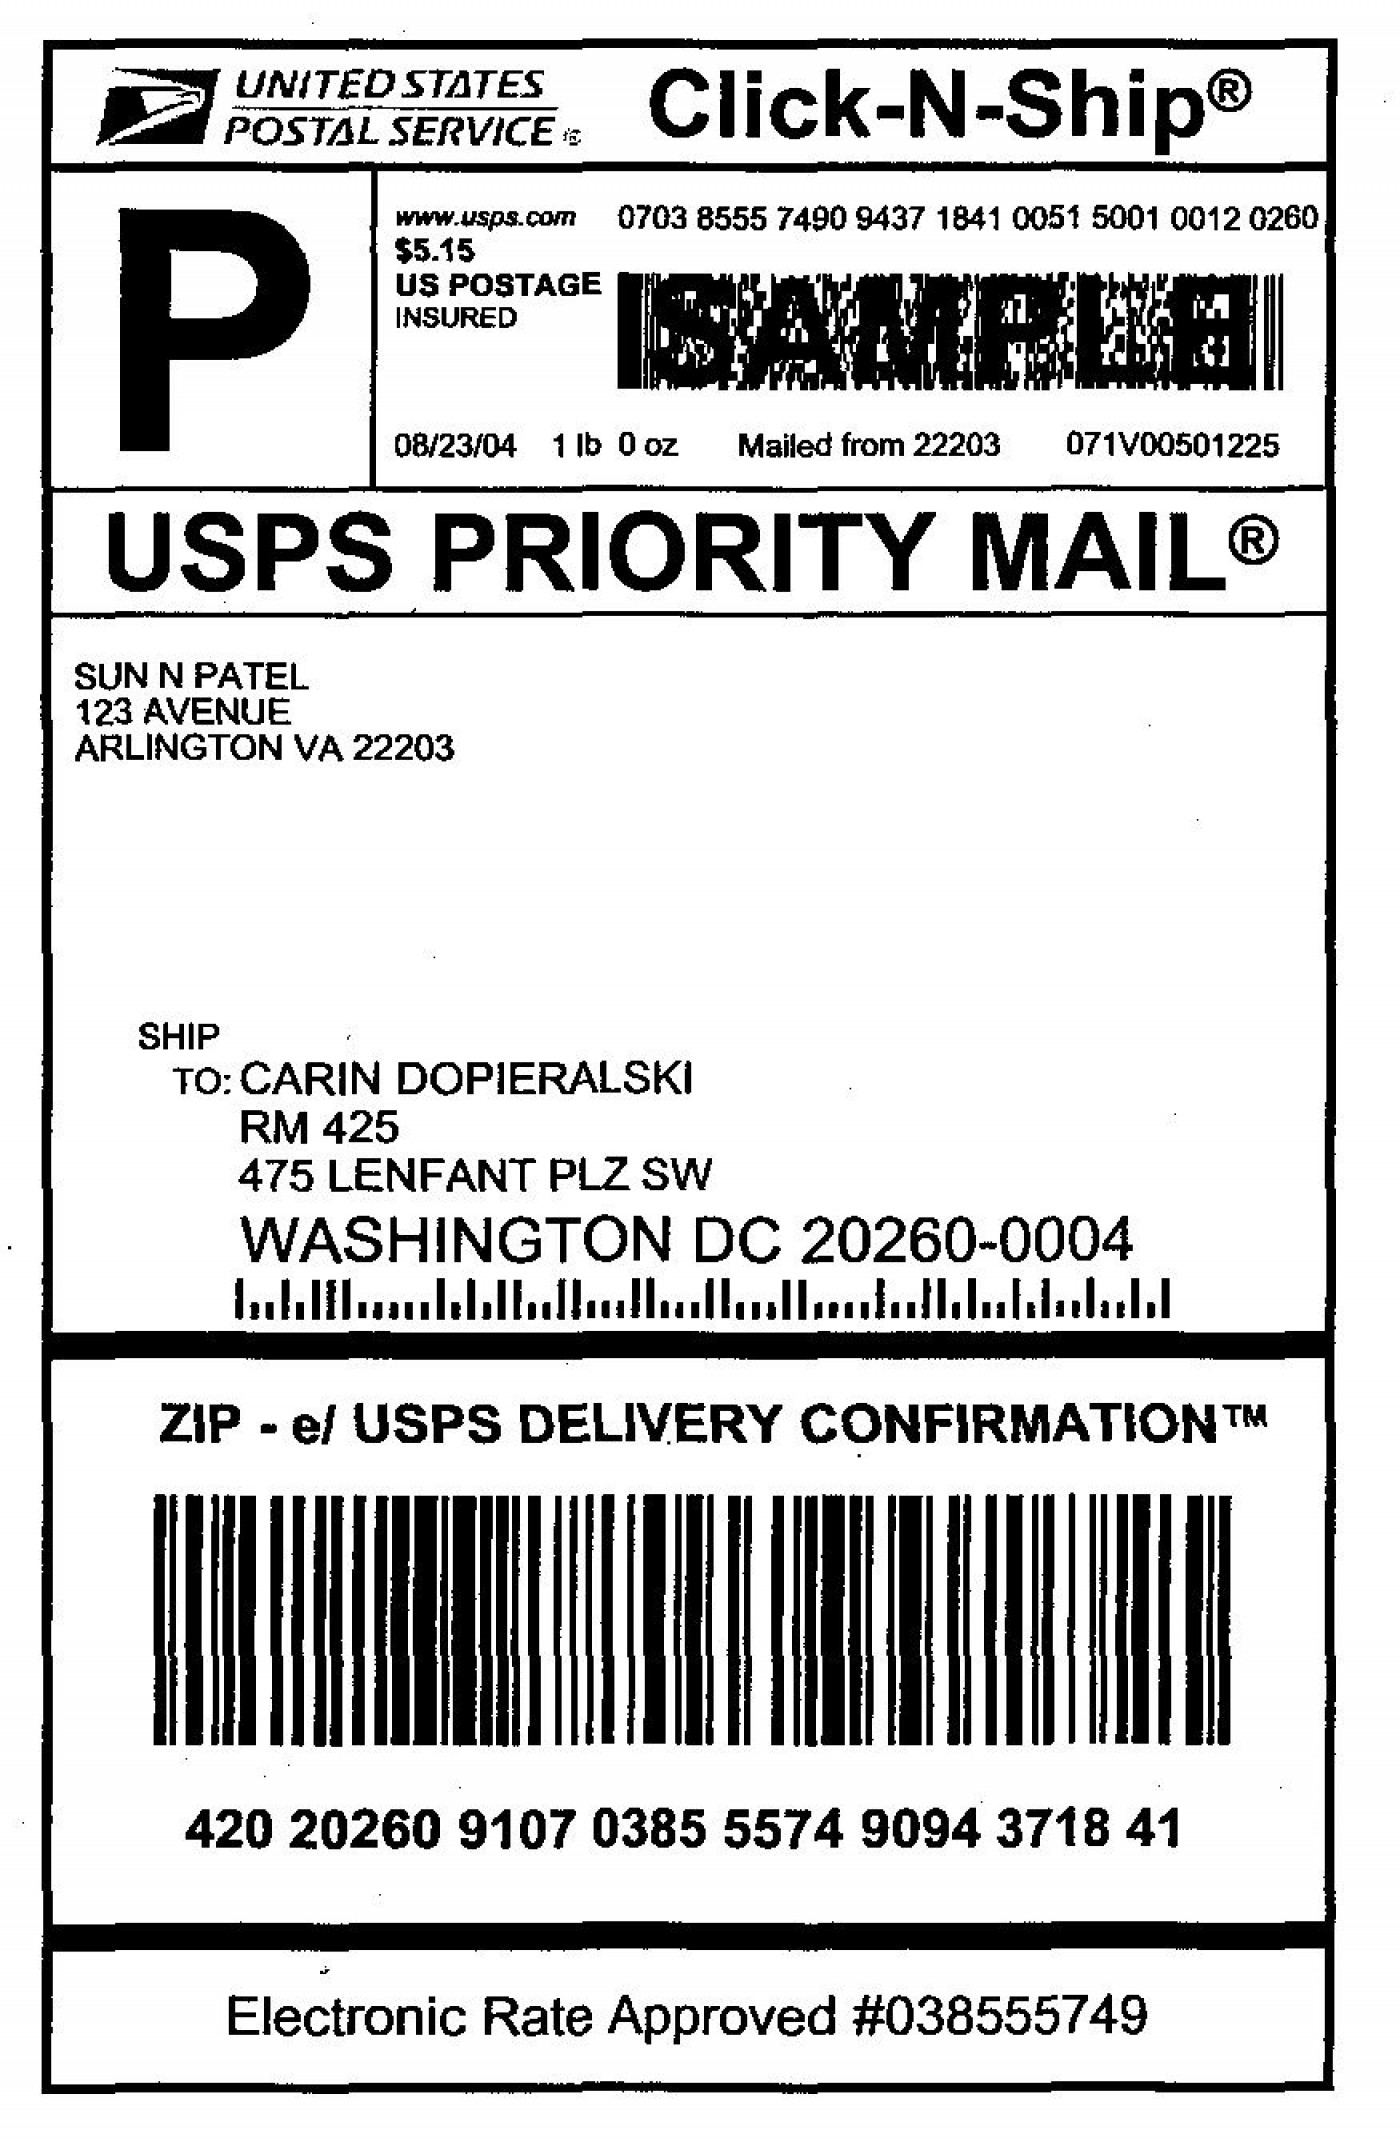 009 Amazing Usp Shipping Label Template Free Image 1400